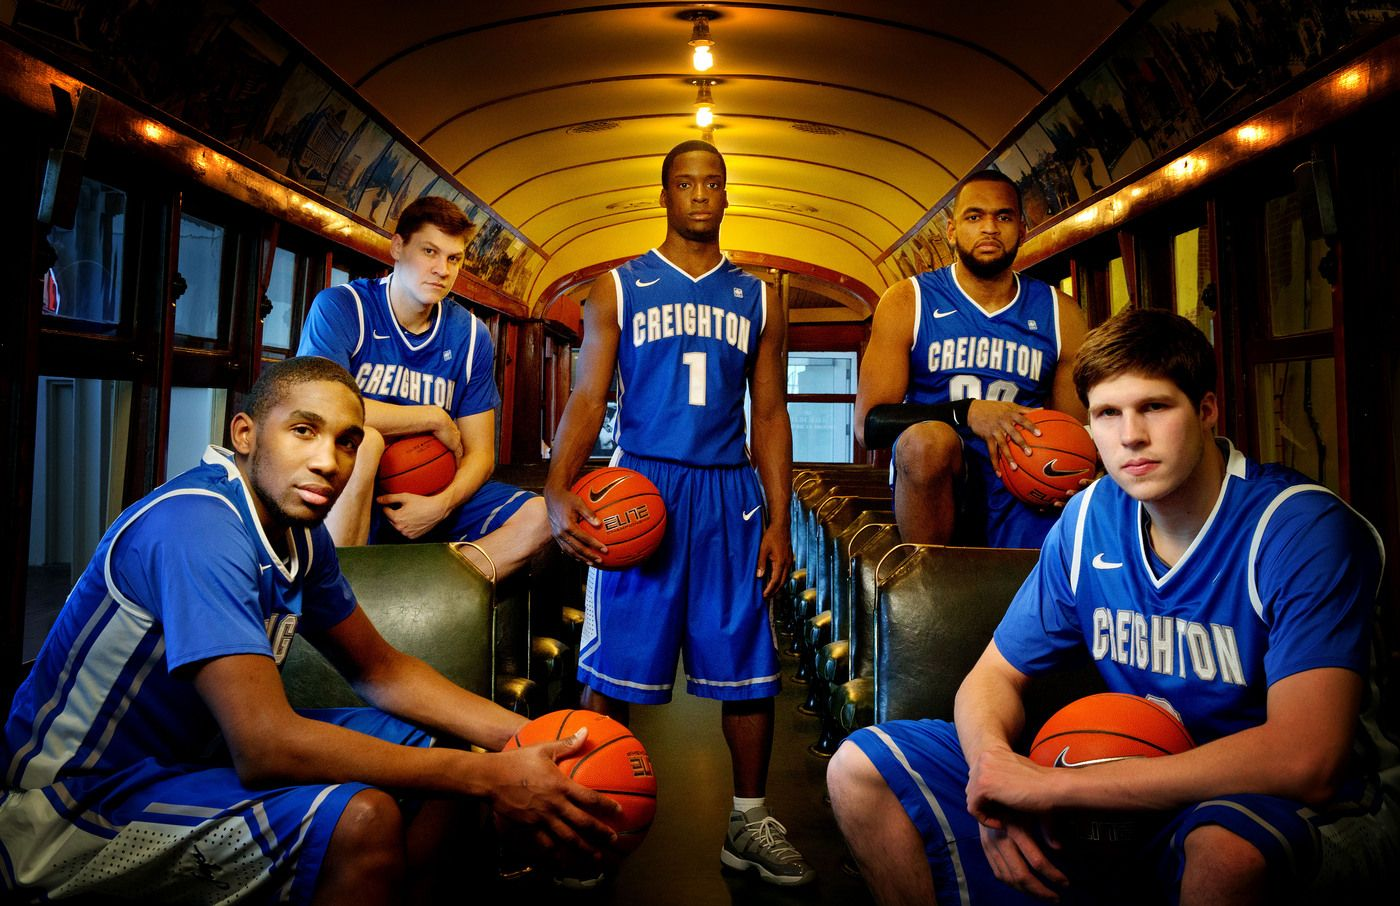 From left are Creighton's Jahenns Manigat, Grant Gibbs